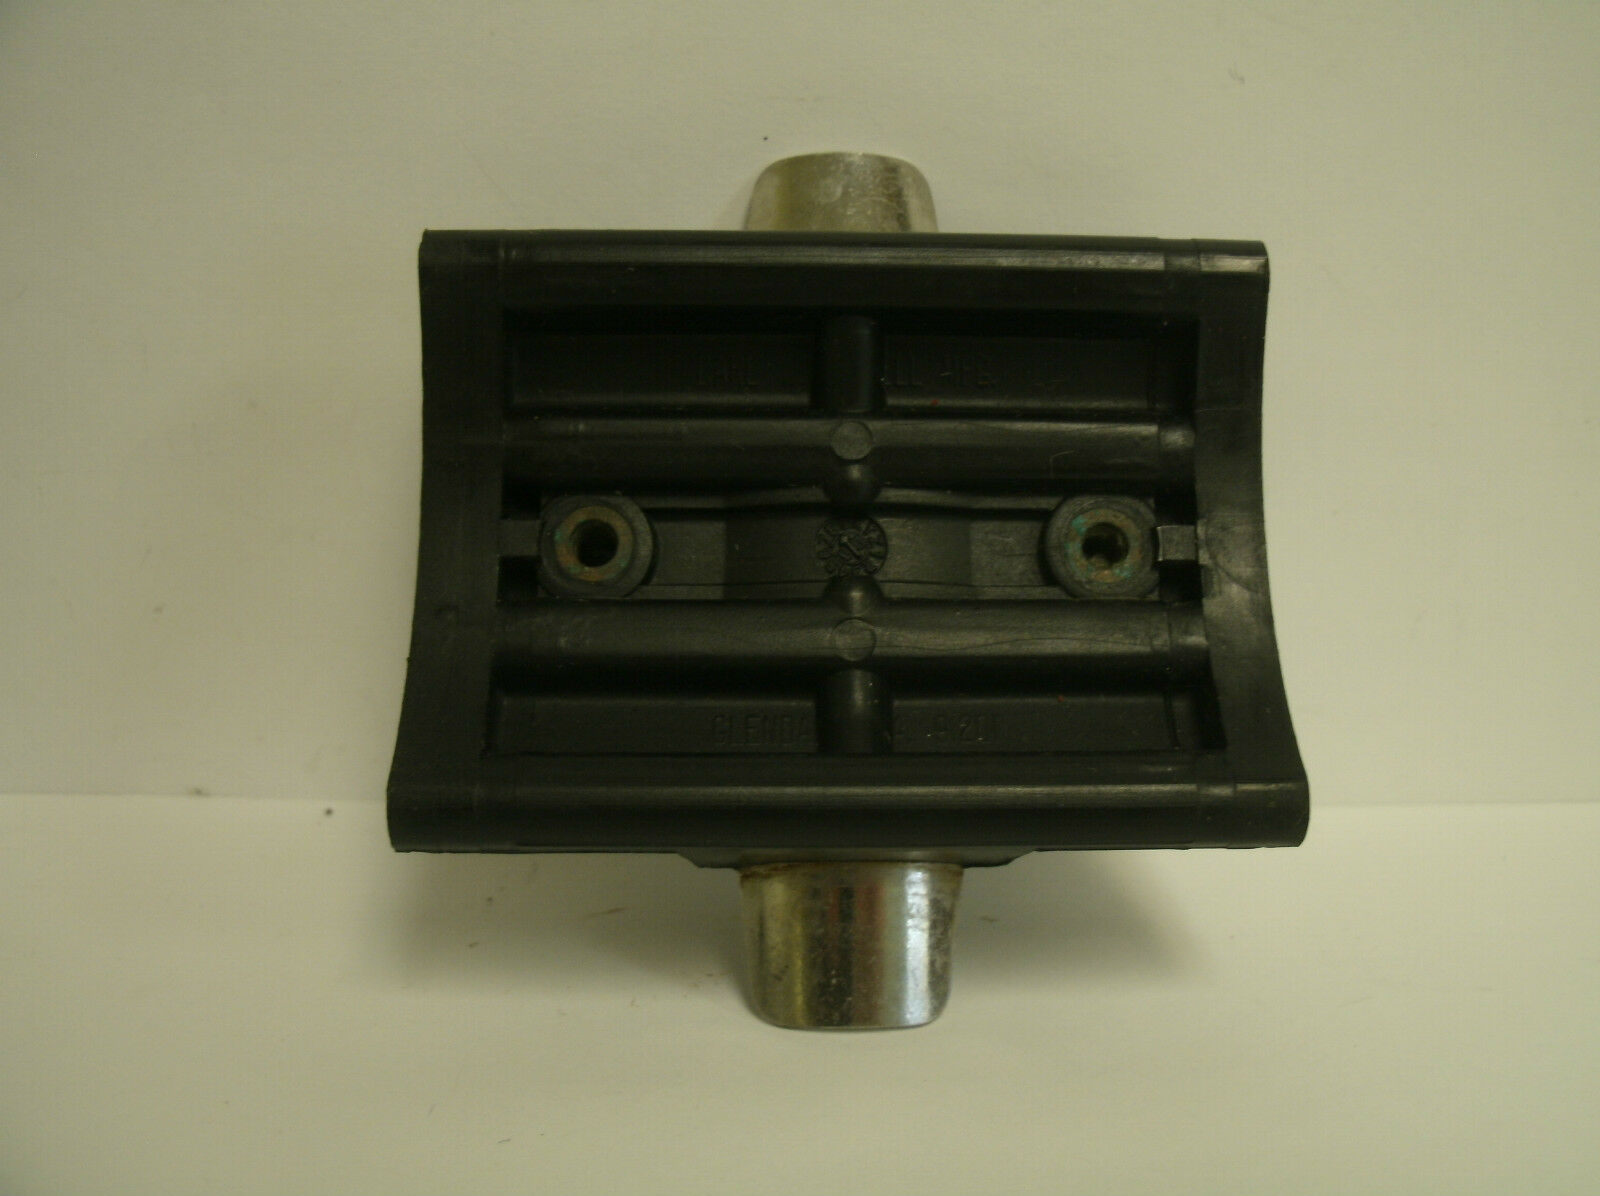 USED NEWELL CONVENTIONAL REEL PART - S 540 4.6 - Rod Stand